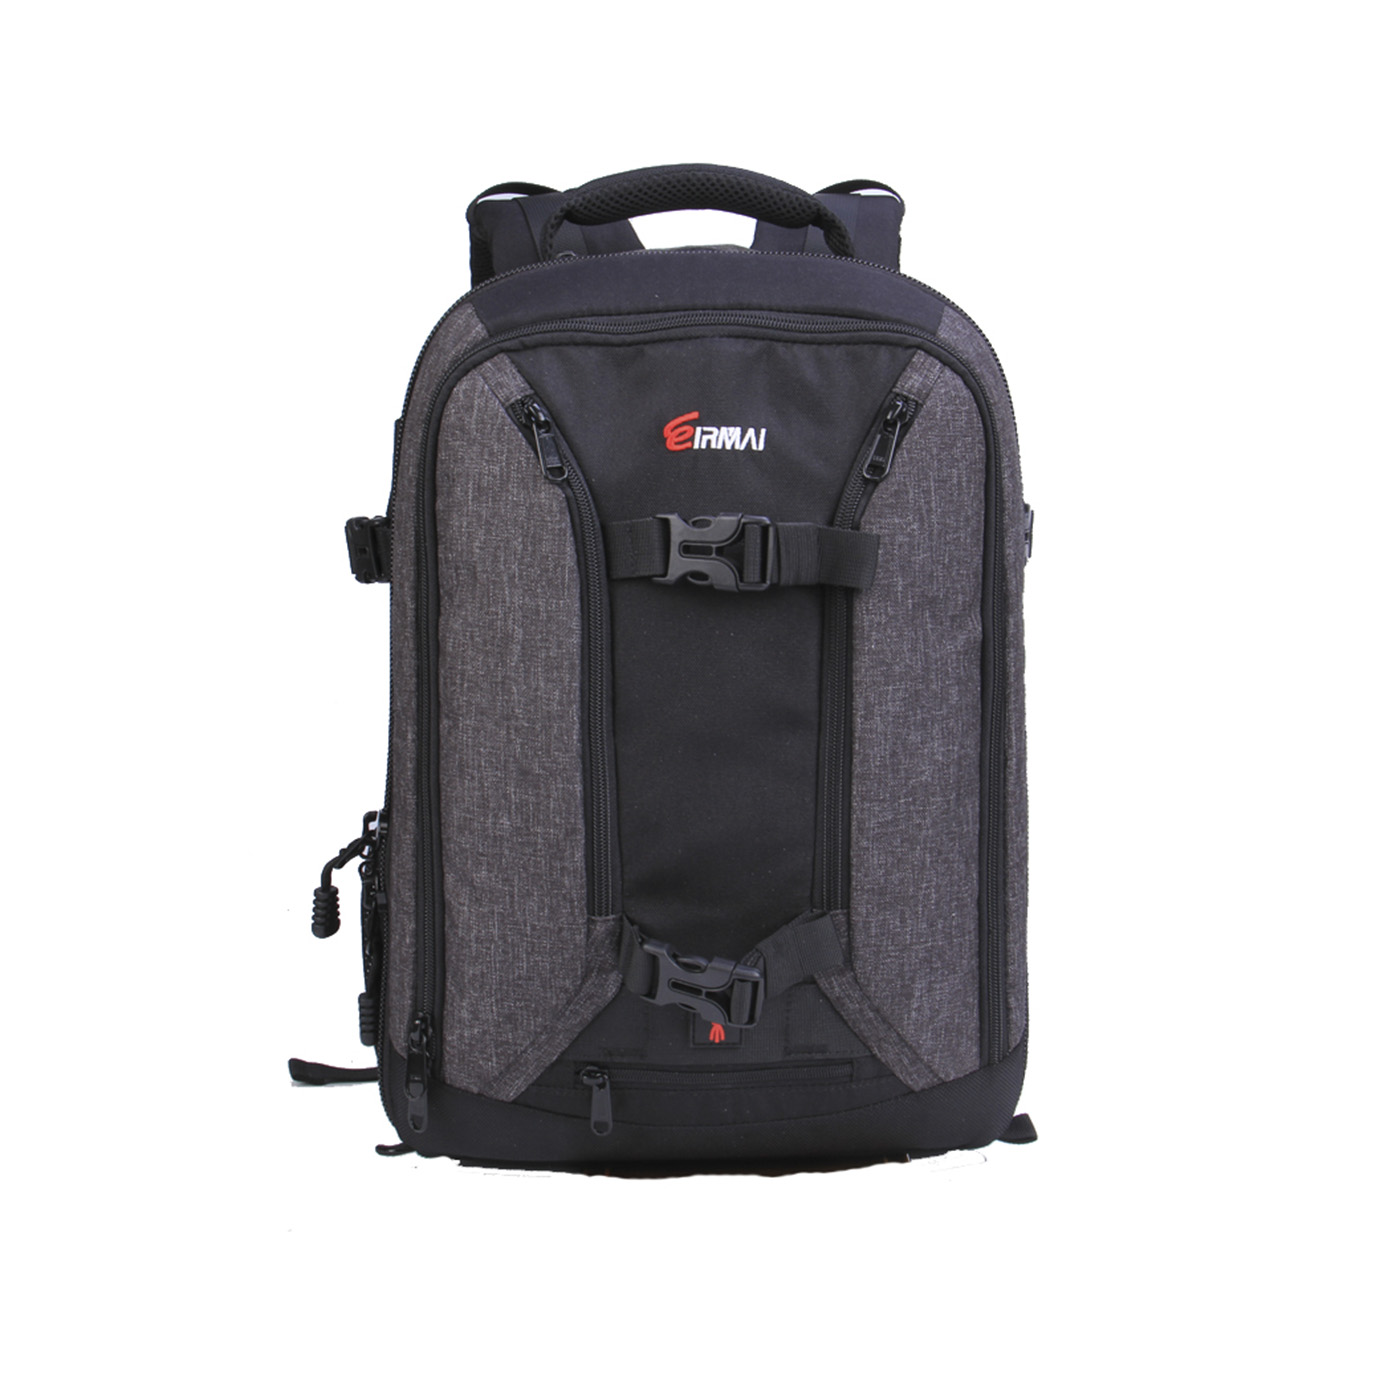 Eirmai backpack pveshop_4_n_